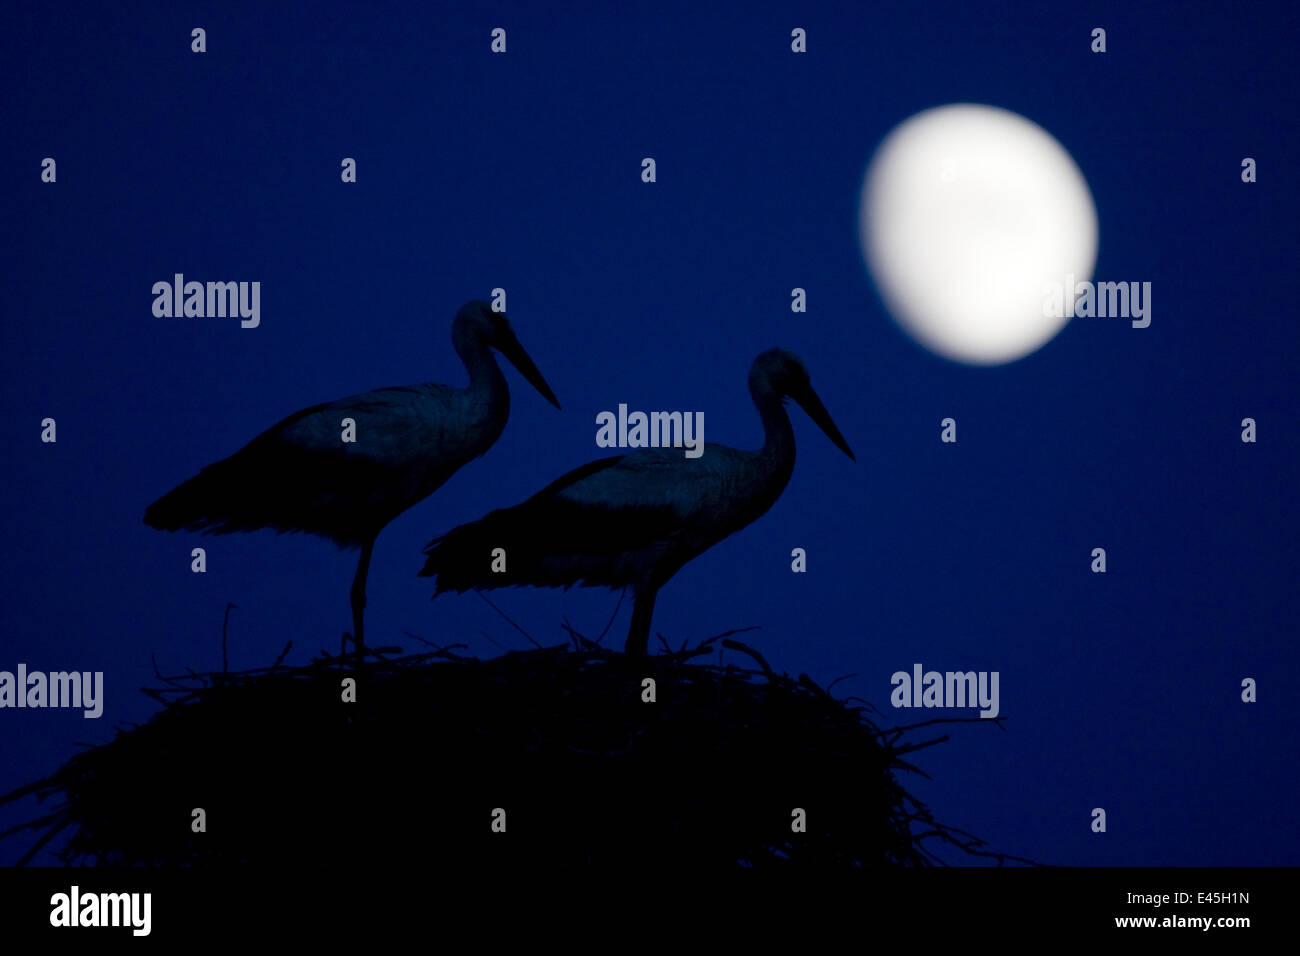 White stork (Ciconia ciconia) pair at nest, dusk, with moon, Nemunas Delta, Lithuania, June 2009 - Stock Image